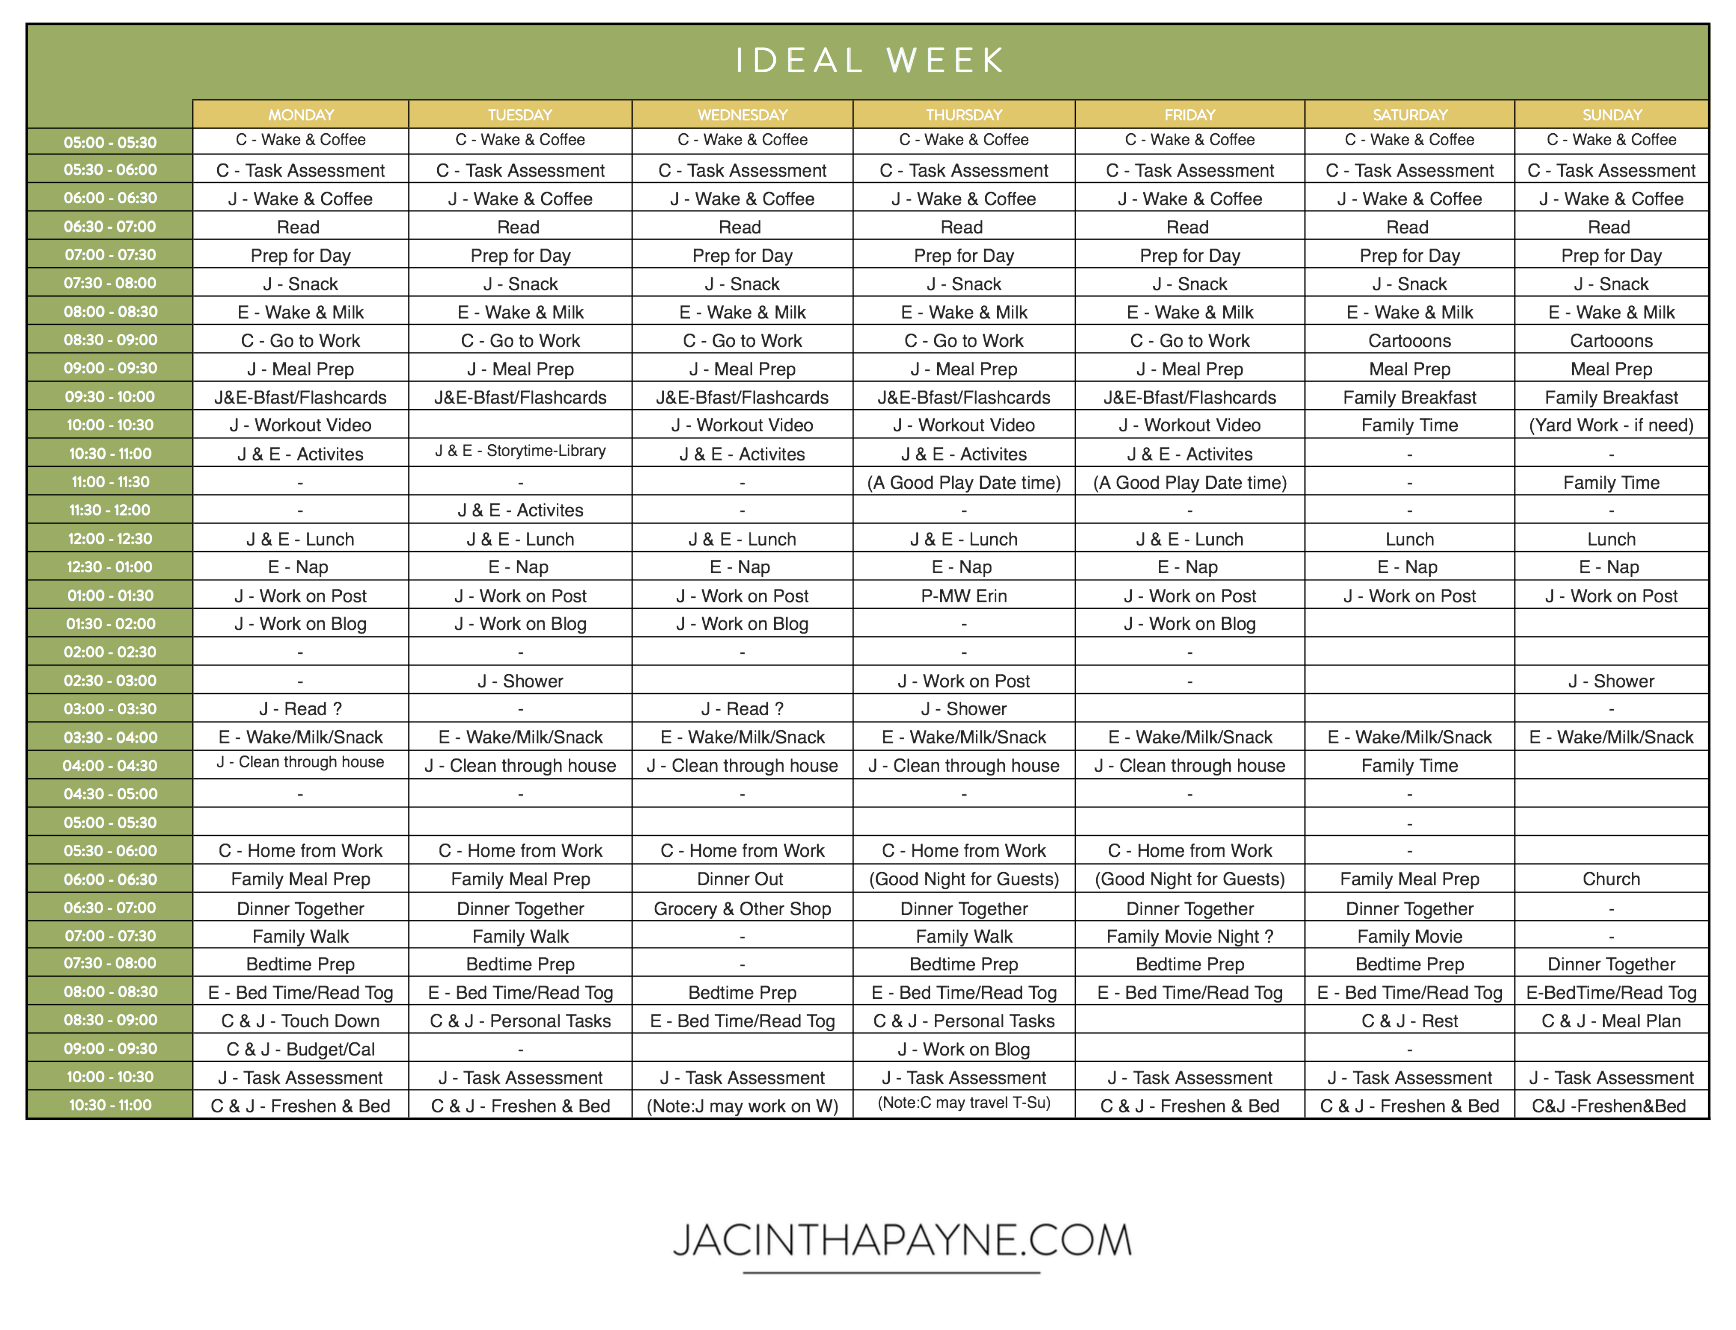 Here is an example of how I filled out my ideal week. You don't have to fill yours out as thoroughly as this mine, but it can be helpful.